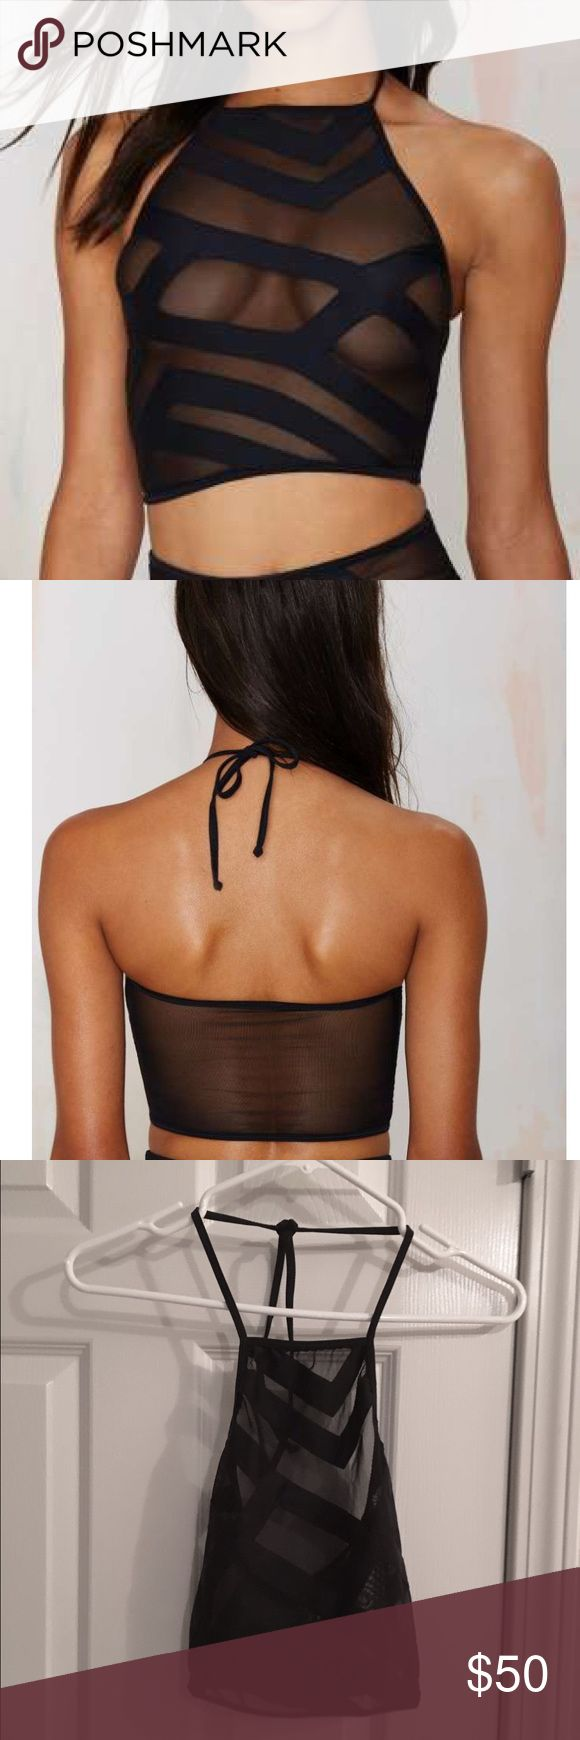 NWOT Lee + Lani Tel Aviv black semi sheer bikini NWOT Lee + Lani Tel Aviv black semi sheer bikini.  Like for love and lemons.  The tel Aviv top.  Geometric cut-out details and mesh. According to the site, small is best for A or B cup or size 2-4. Nasty Gal Swim Bikinis